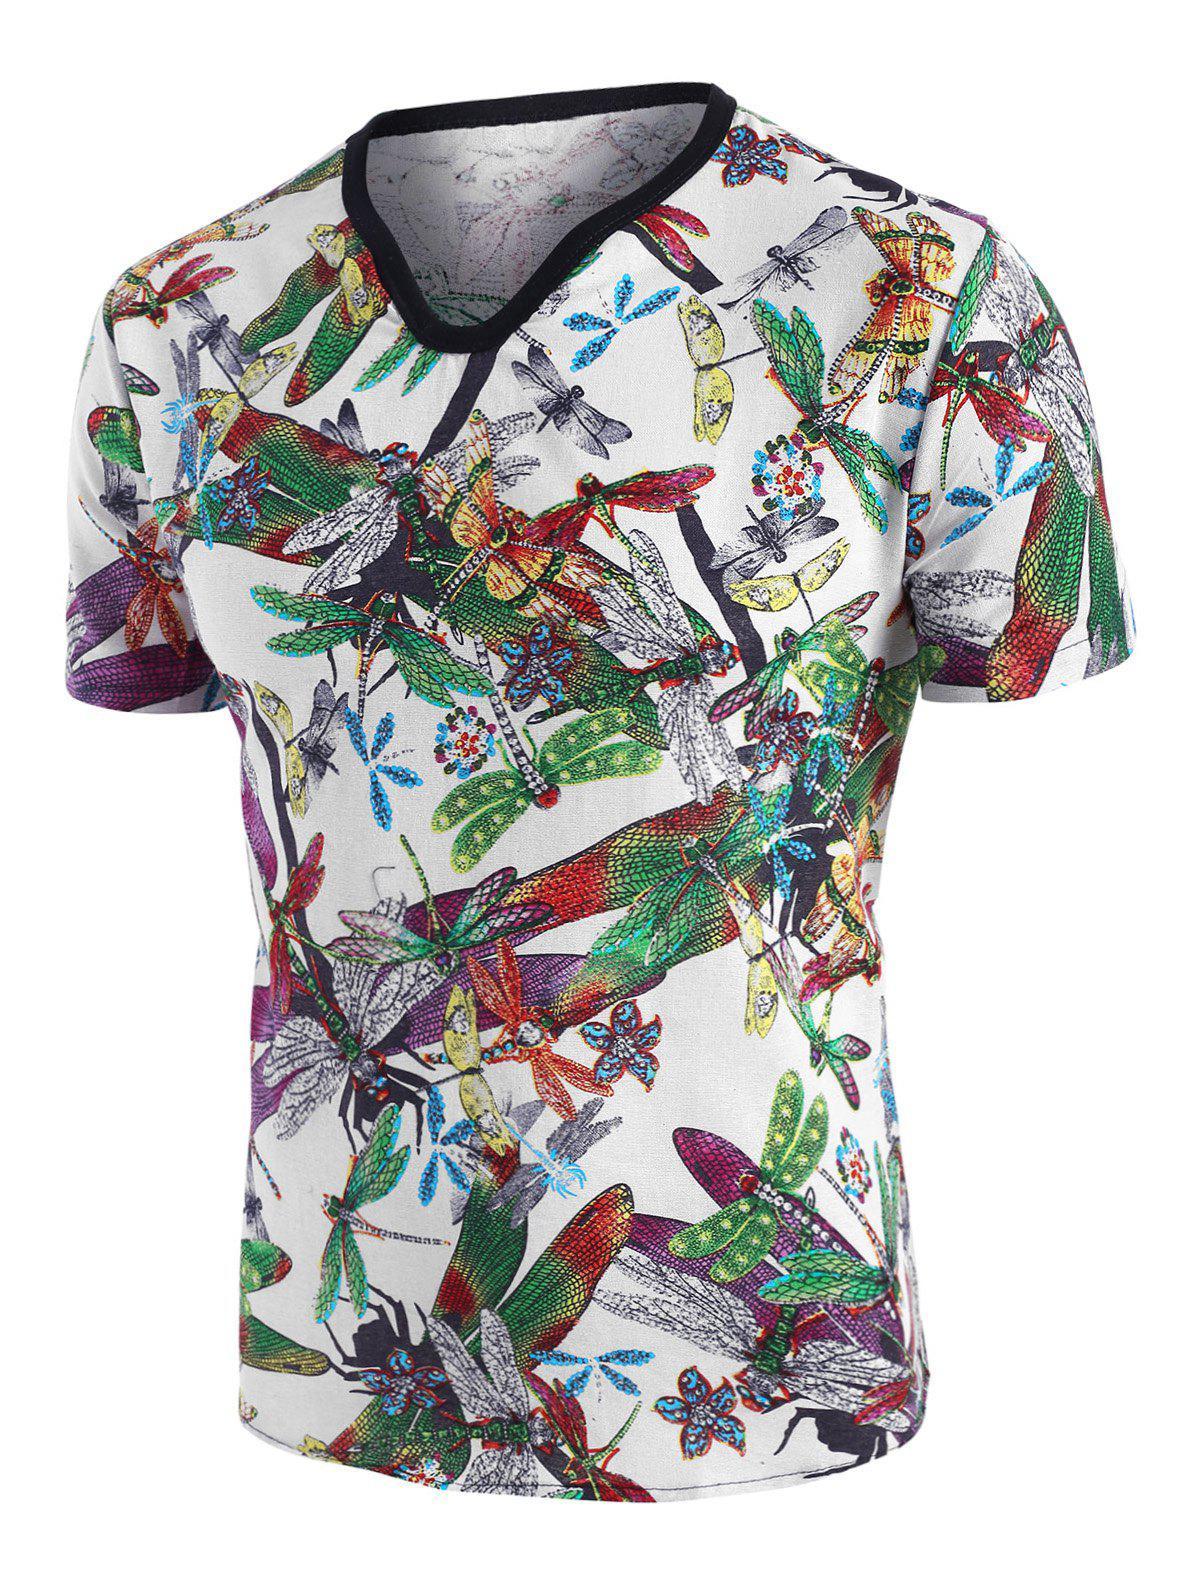 Store Dragonfly Print Ethnic Short Sleeve T Shirt